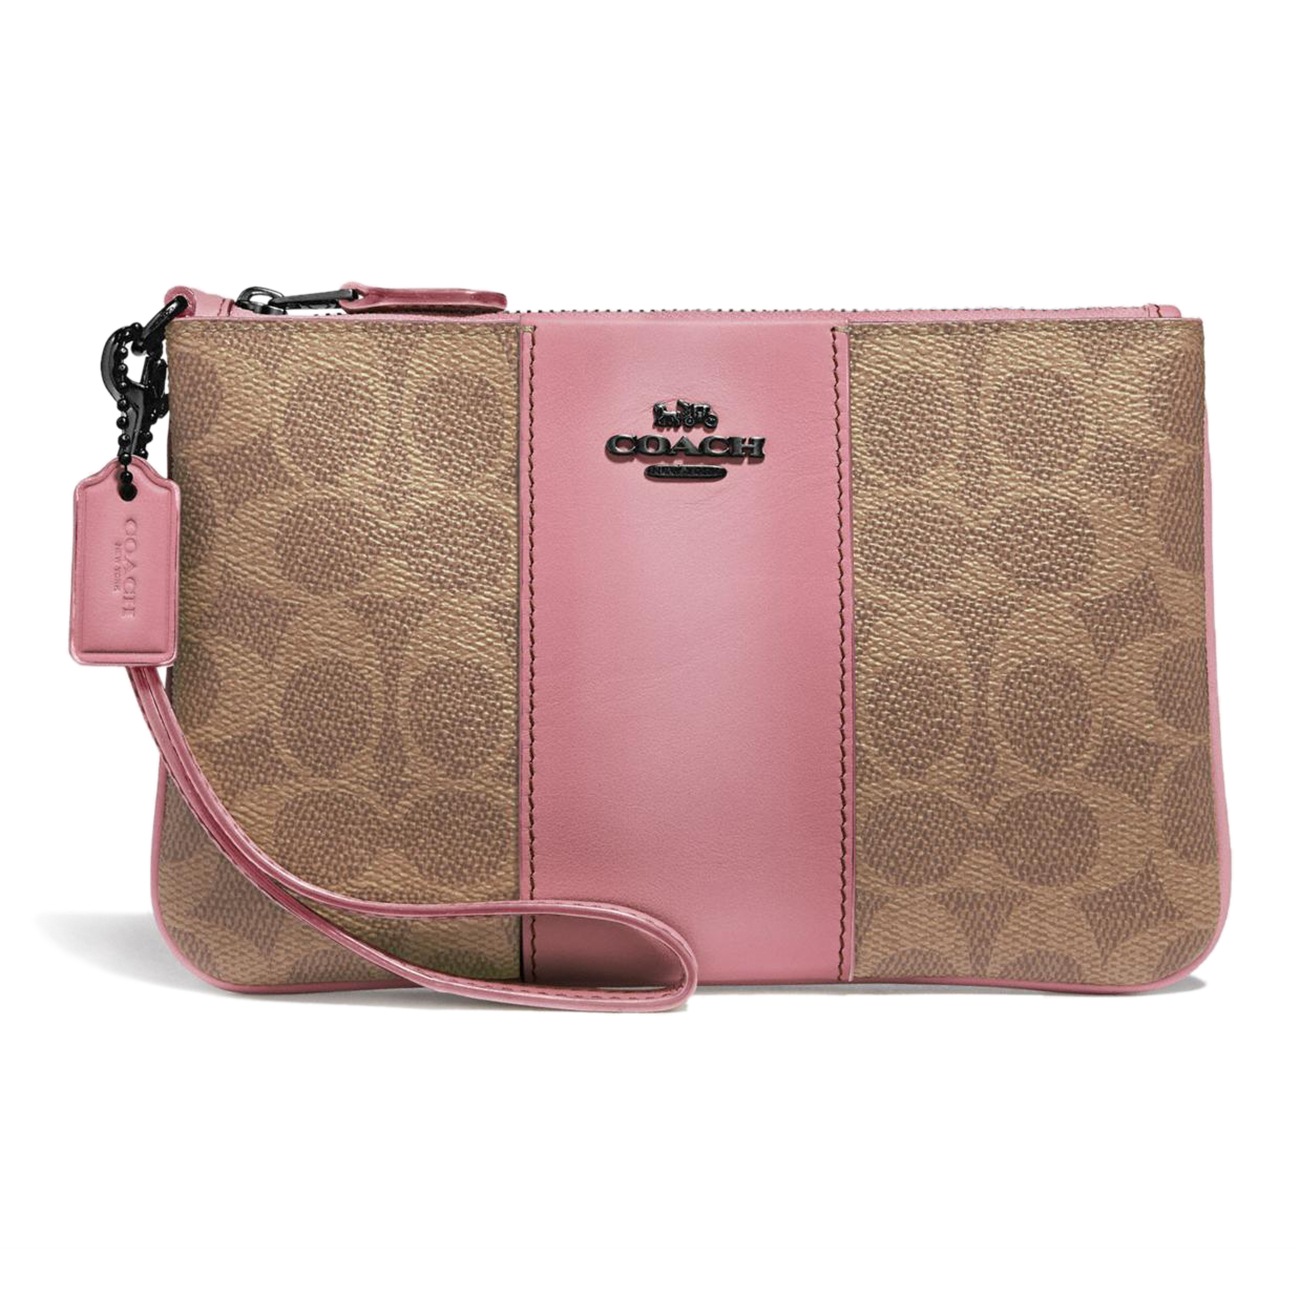 Coach Small Wristlet In Colorblock Signature Canvas